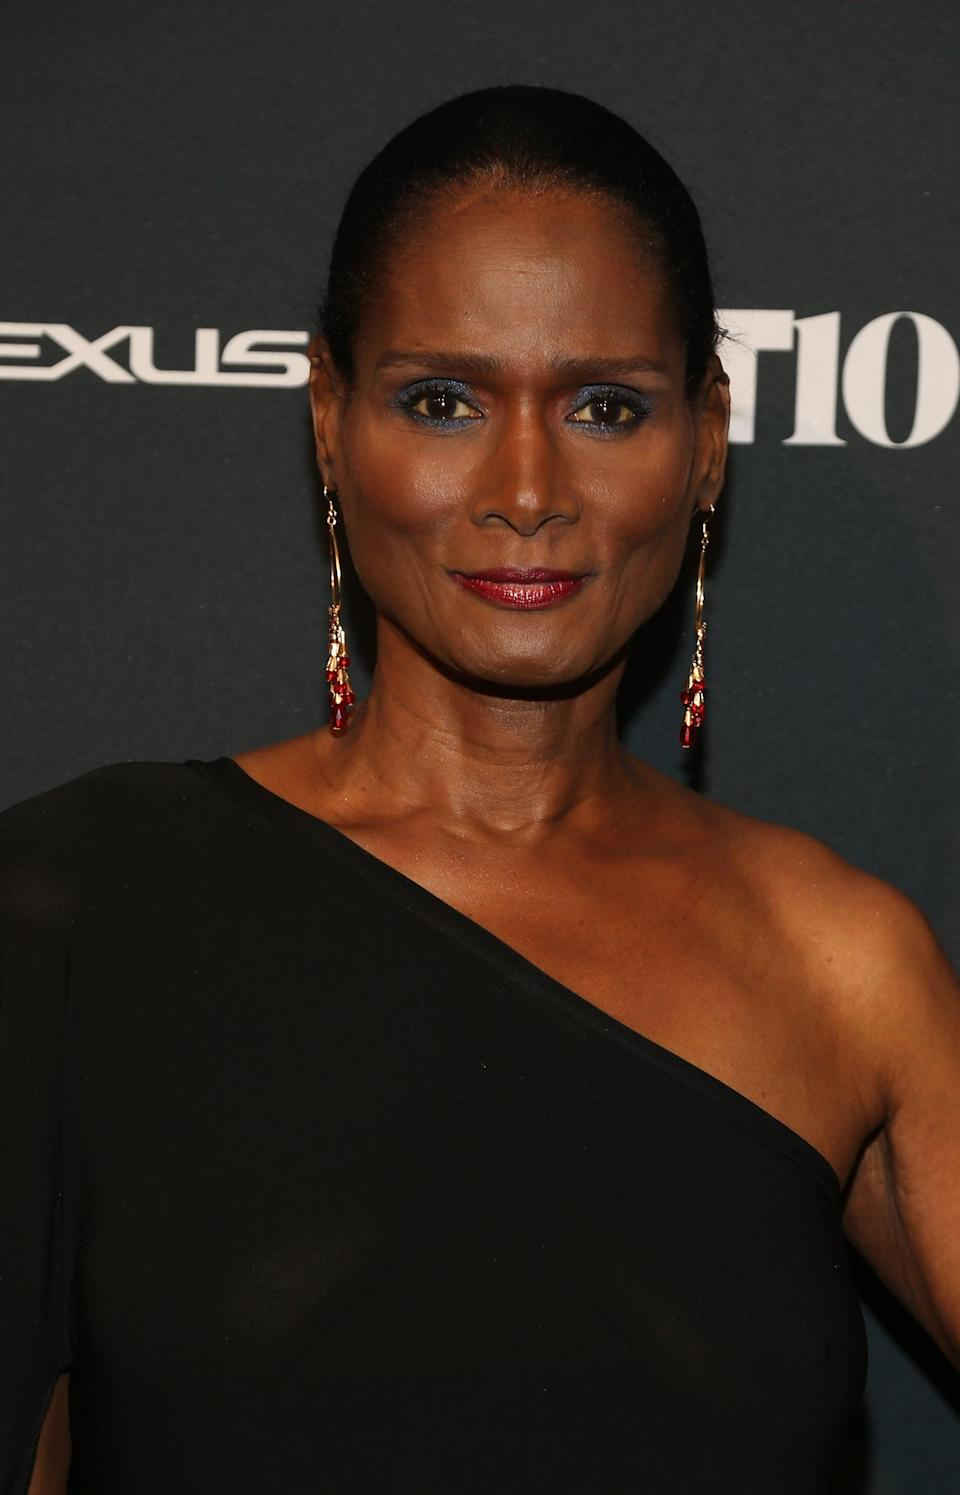 "<p>Tracey Norman was the first Black transgender woman to model. At the start of her career, she didn't disclose her identity and was able to work with publications such as <strong>Essence</strong>, <strong>Vogue Italia</strong>, and <strong>Harper's Bazaar India</strong>. In 1975, she appeared on the box of Clairol's Born Beautiful Hair Colour No.512. The shade was one of Clairol's best sellers at the time. In 1980, the truth about her birth gender was discovered by a hairdresser while on a photoshoot. The hairdresser publicly outed her and as a result, companies refused to work with her. After years struggling to find work, Norman became an active figure in the drag ball community.</p> <p>In 2015, Norman became the subject of a biographical piece <a href=""https://www.thecut.com/2015/12/tracey-africa-transgender-model-c-v-r.html"" class=""link rapid-noclick-resp"" rel=""nofollow noopener"" target=""_blank"" data-ylk=""slk:written by digital fashion site The Cut"">written by digital fashion site <strong>The Cut</strong></a>. The following year, Clairol signed her up as the face of their 'Nice 'n Easy Color As Real As You Are' campaign. Norman later became one of two openly transgender models to appear on the cover of <strong>Harpers Bazaar</strong>.</p> <p>Although her true status remained undetected for some time, it took a lot of courage for Norman to enter the world of modeling, especially at a time when transgender people weren't accepted in society. As attitudes towards the LGBT community have now thankfully changed, the revitalization of Norman's career was well overdue.</p>"